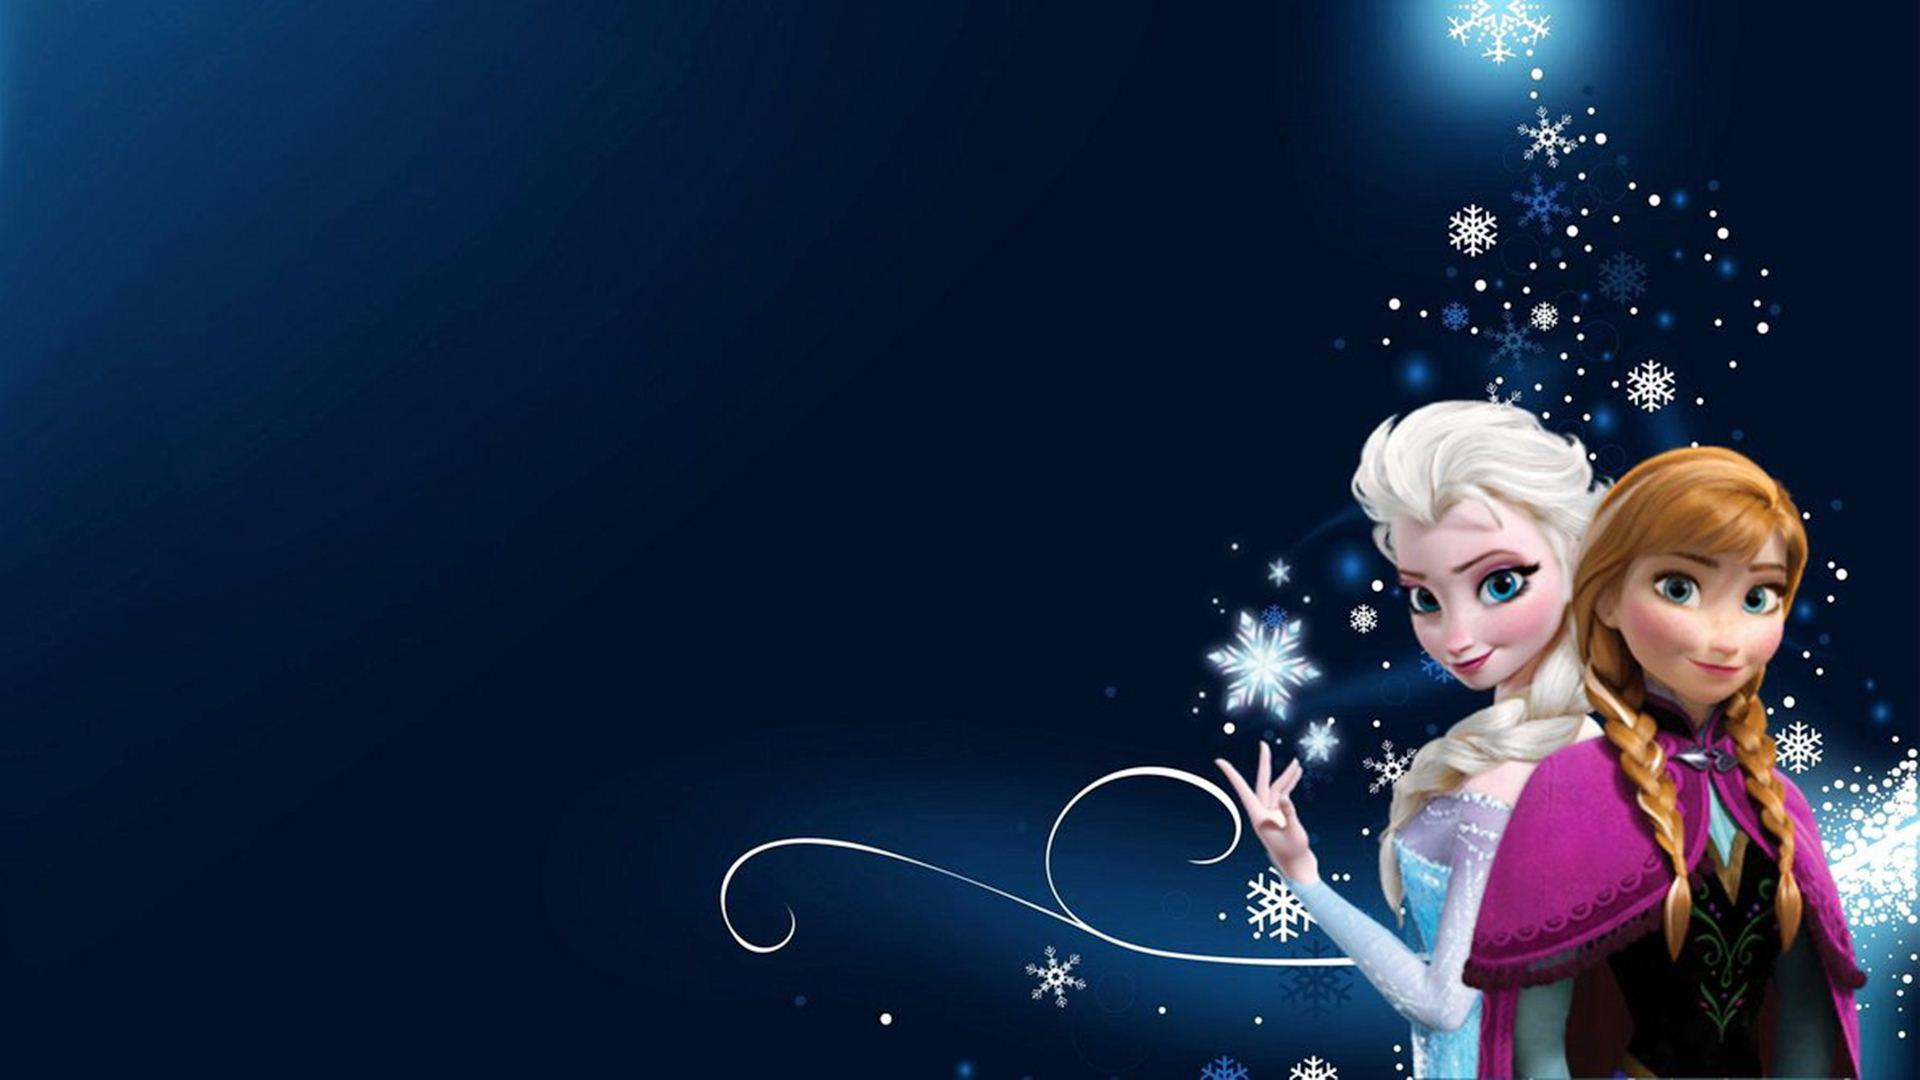 elsa frozen wallpapers hd pixelstalk net